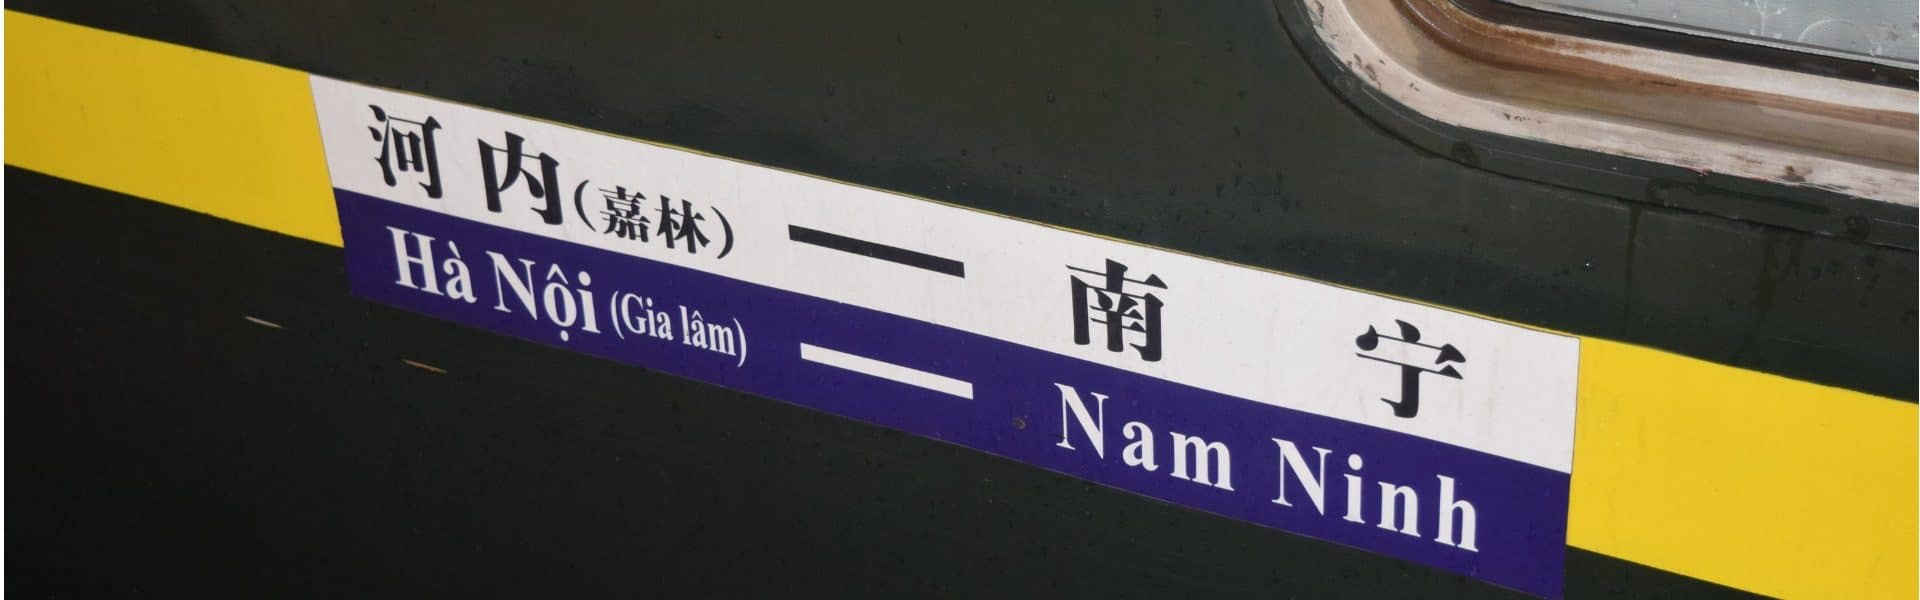 A sign on a train from Hanoi to Nam Ninh